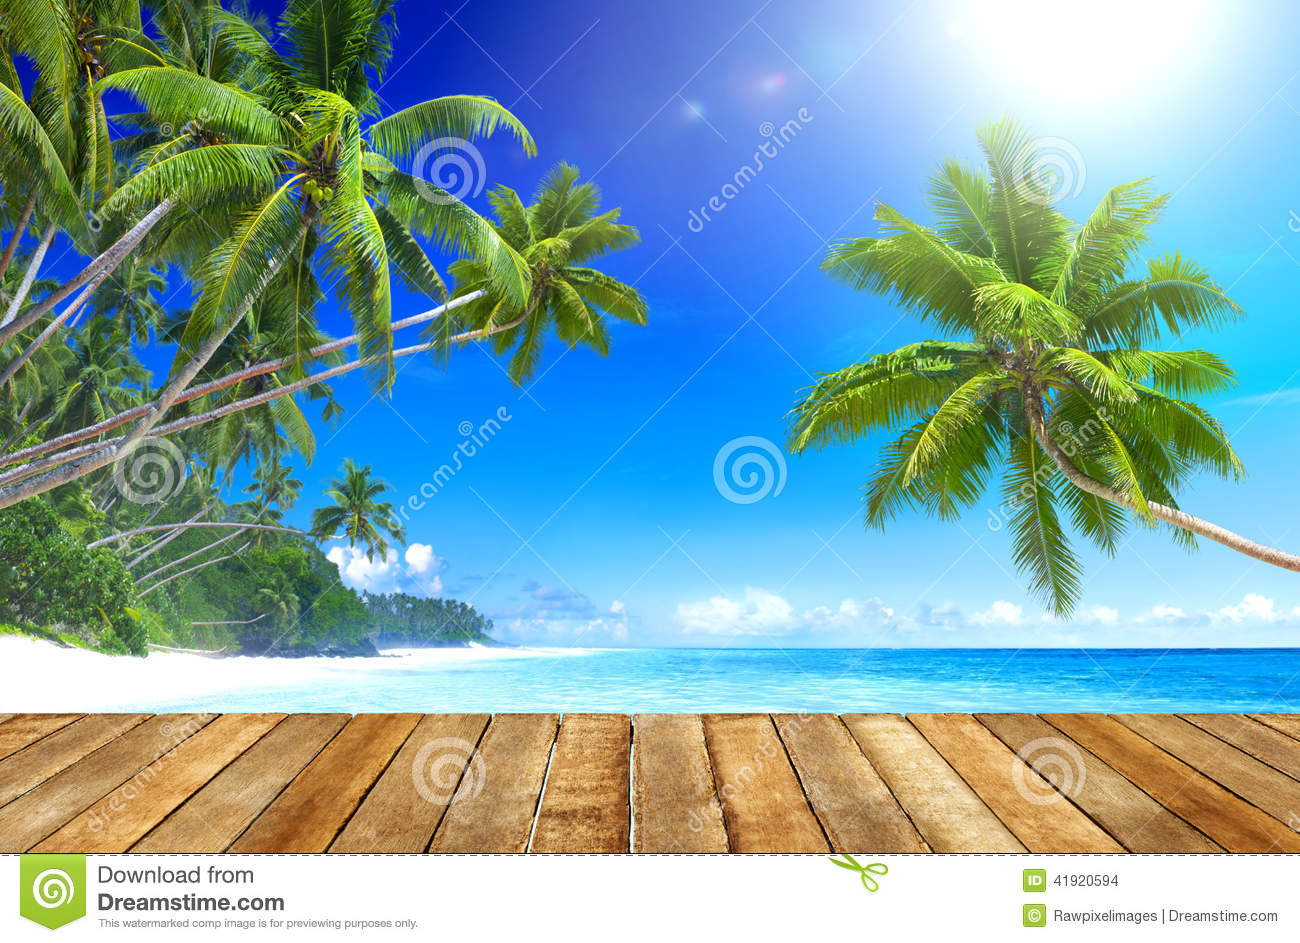 Tropical Paradise Beach And Wooden Plank Floor Stock Photo